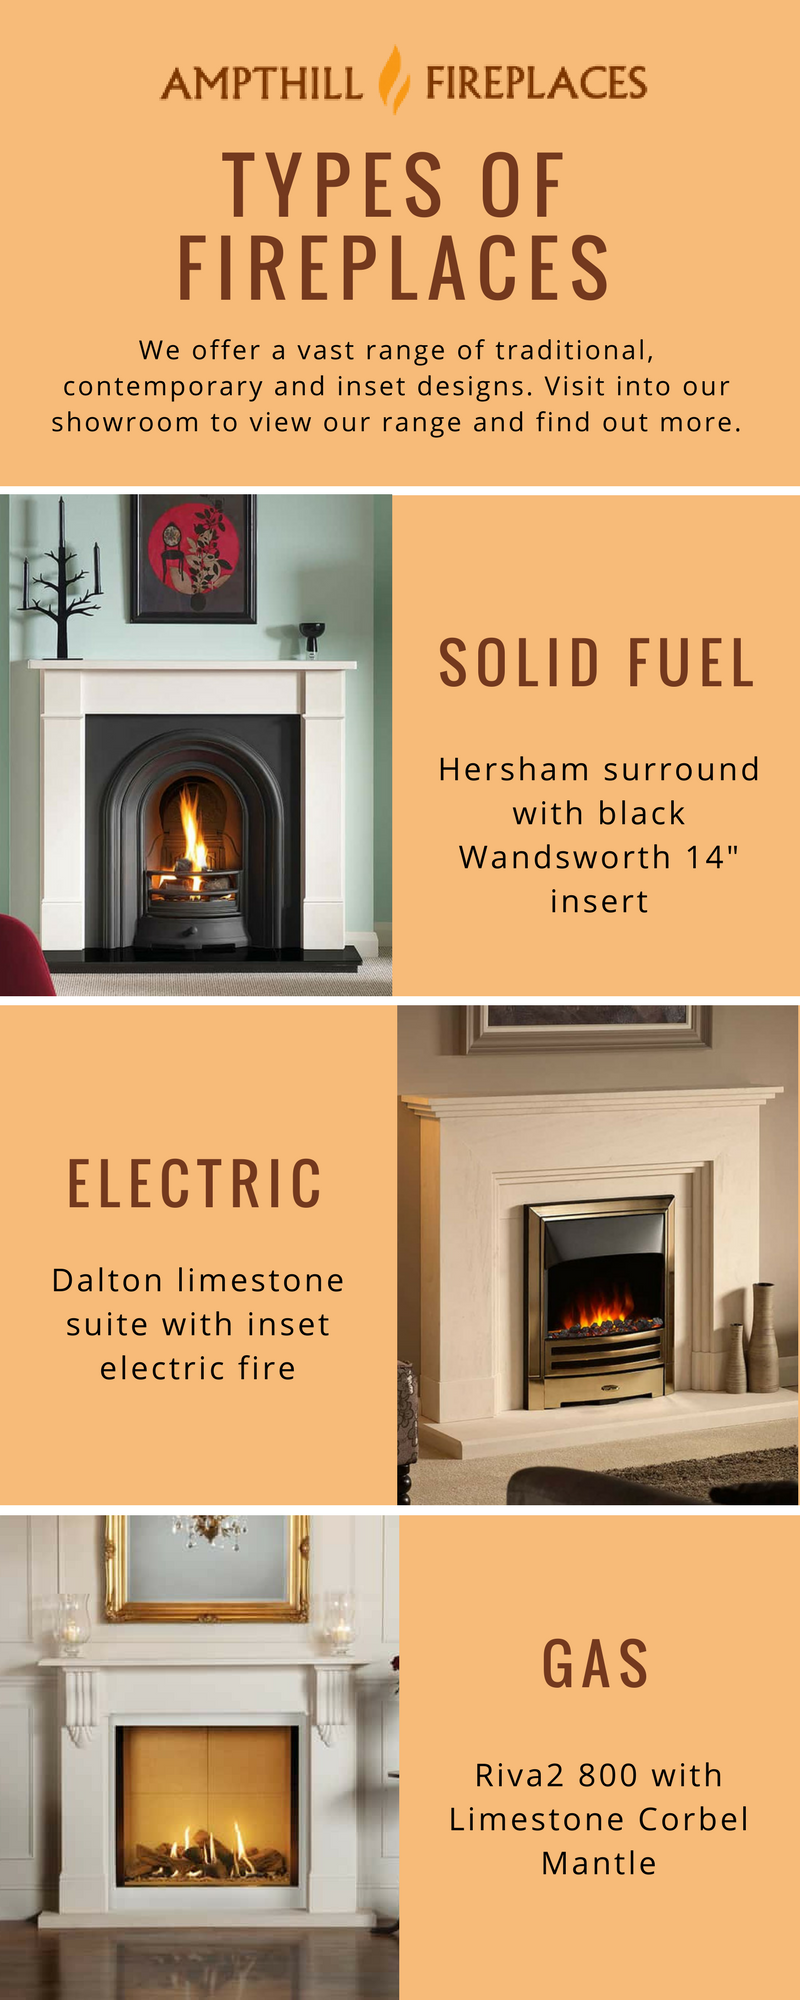 types-fireplaces-infographic-lkrllc